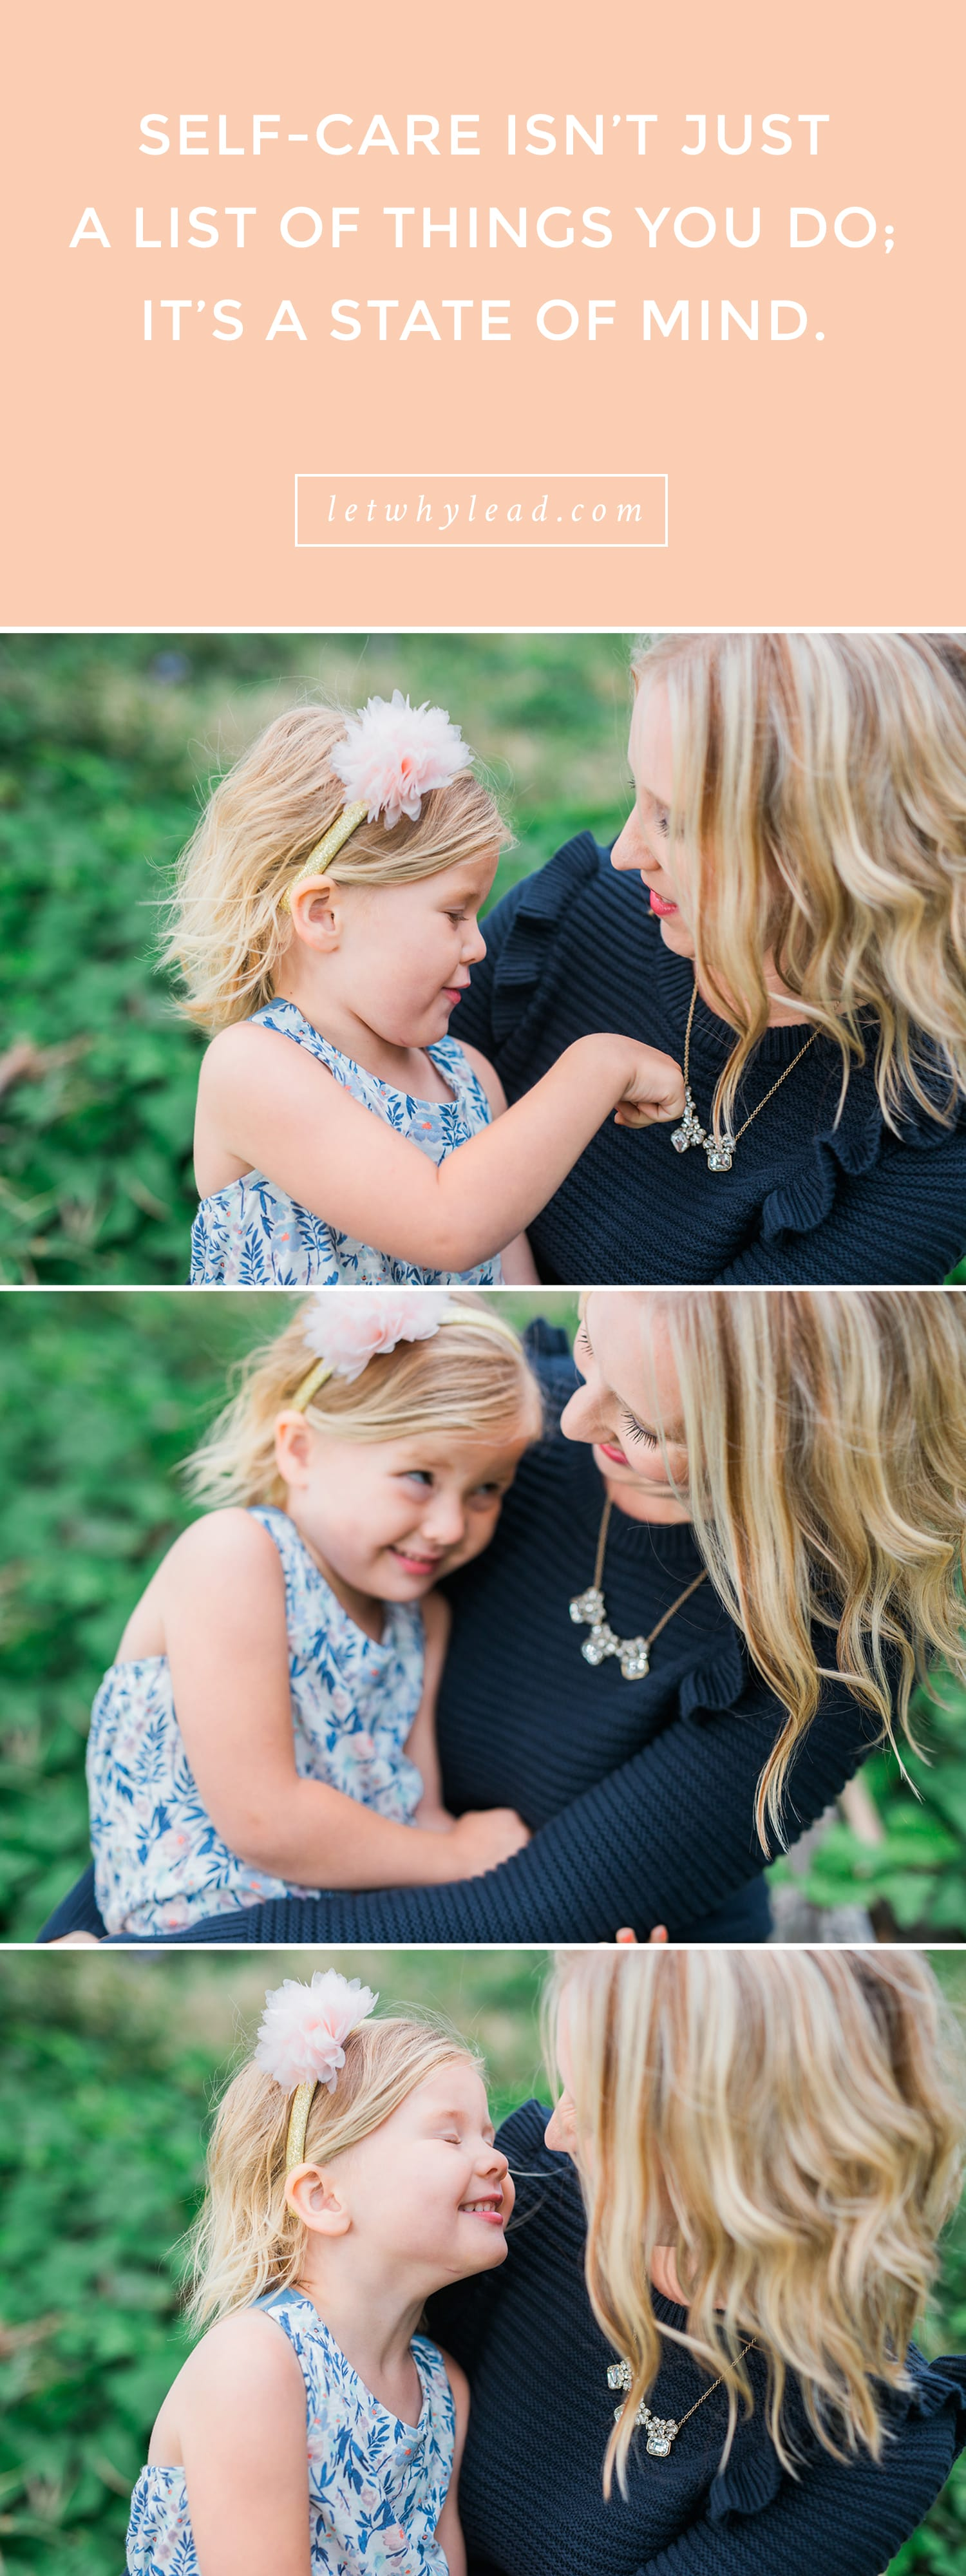 24 Self-Care Practices for Mothers   What I love about these is how simple & easy they are! Bringing joy into your life doesn't have to be expensive or time-consuming!